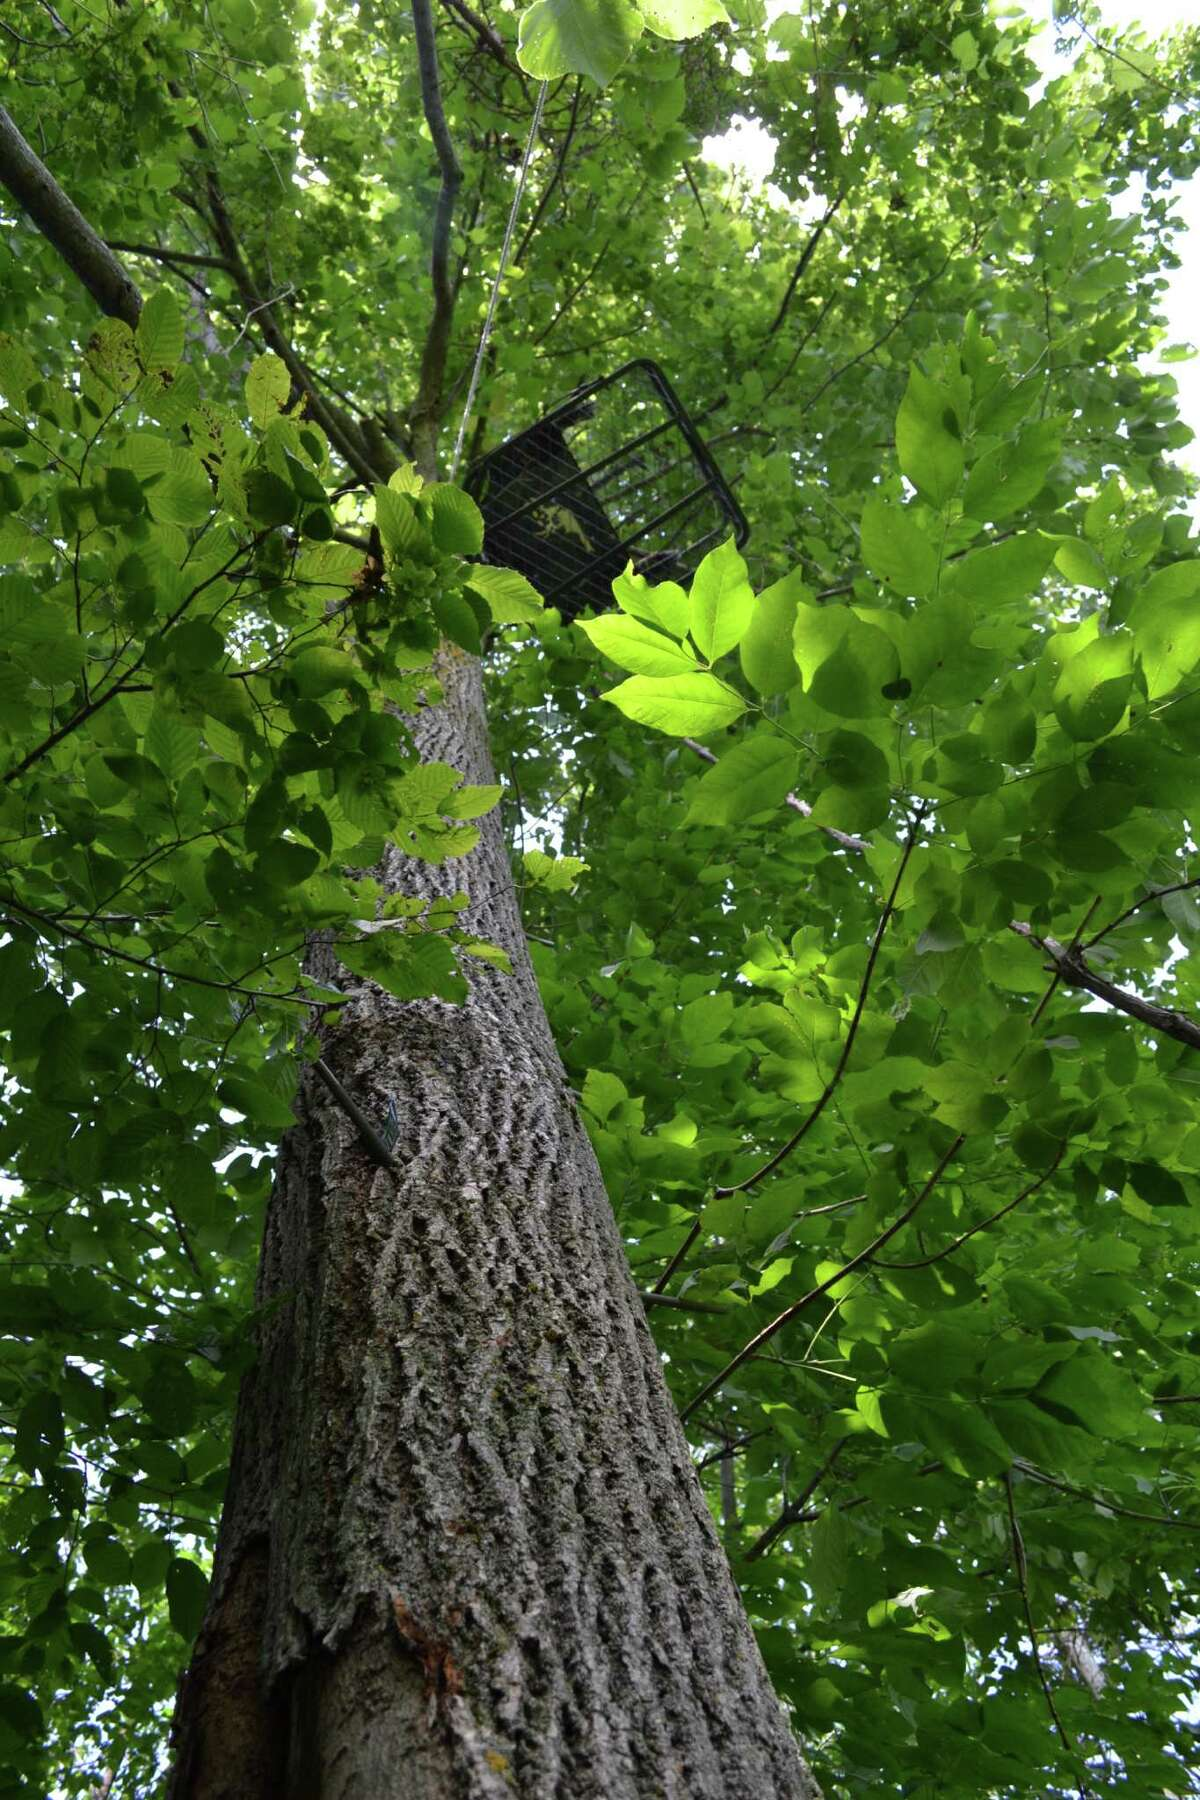 The Warren County Sheriff's Office said a bowhunter appeared to have lost his footing from a tree stand and died Sept. 28, 2021. It's unclear if it was a chain tree stand, like the one shown. But it was a stand that was 20 to 25 feet high. (Keshia Clukey/ Times Union)